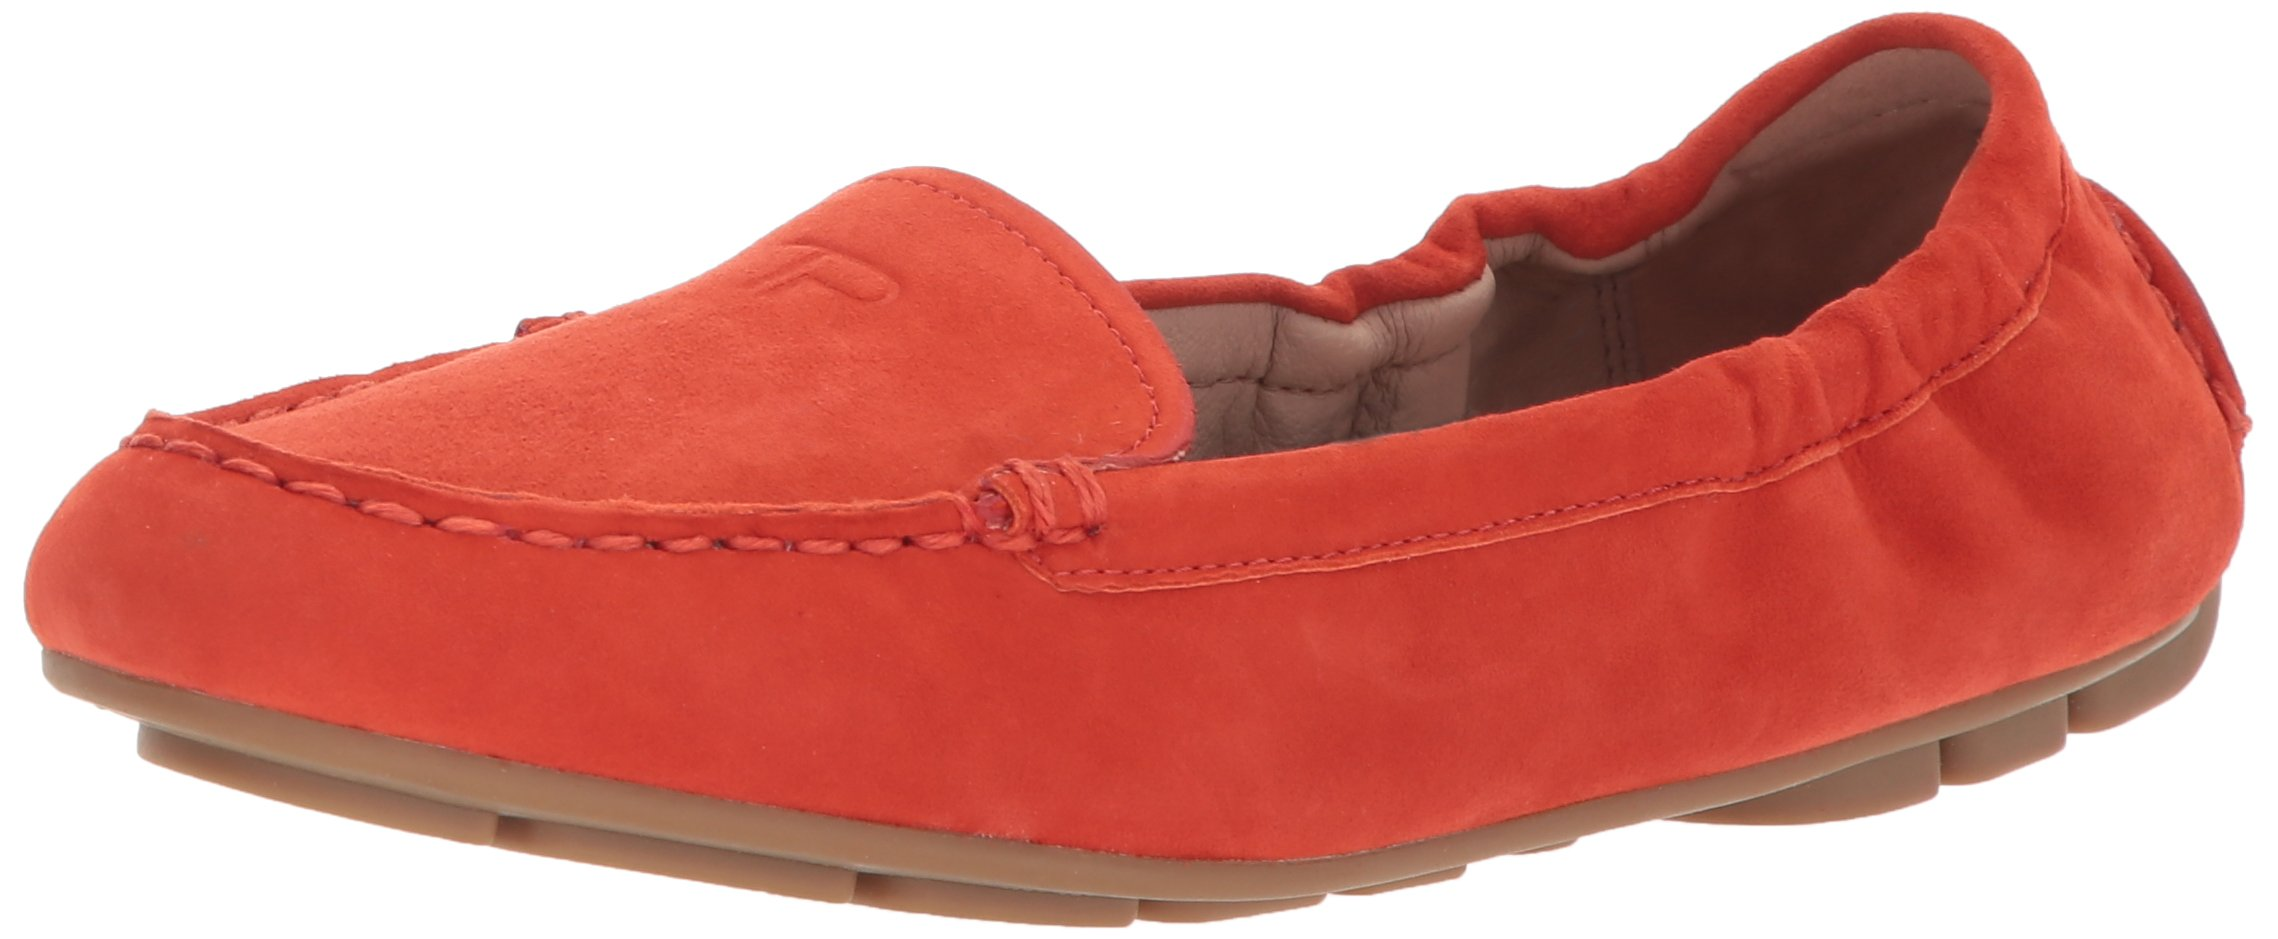 Taryn Rose Women's Kristine Silky Suede Driving Style Loafer, Poppy, 8 M M US